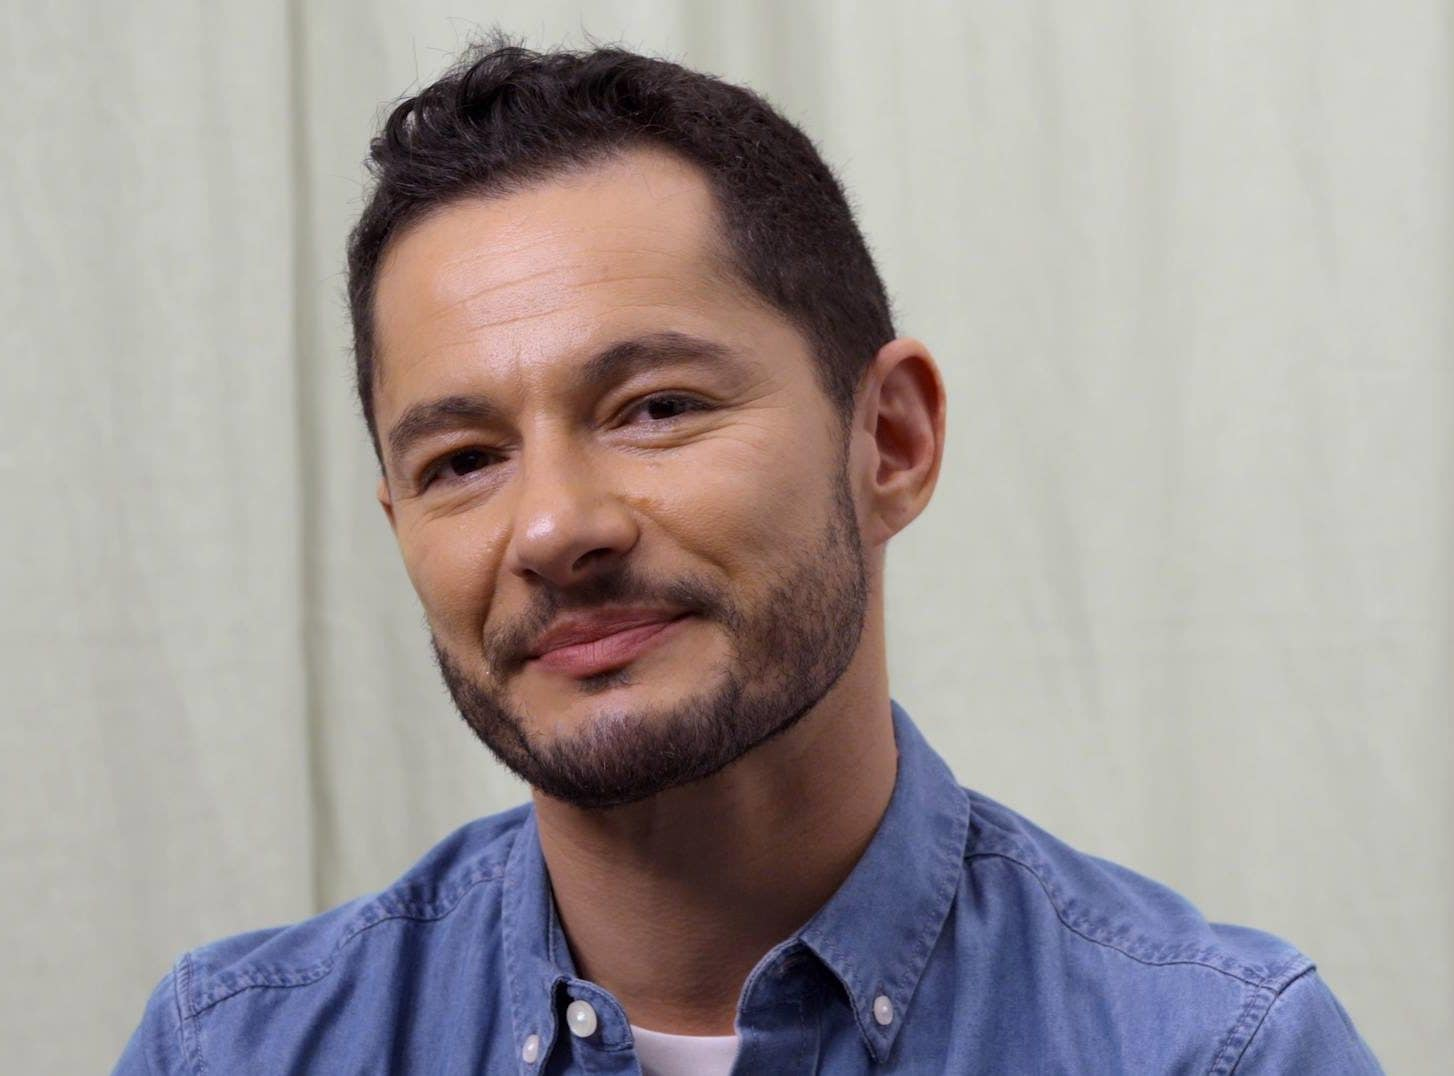 Jake Graf with short brown hair with small quiff wearing denim shirt